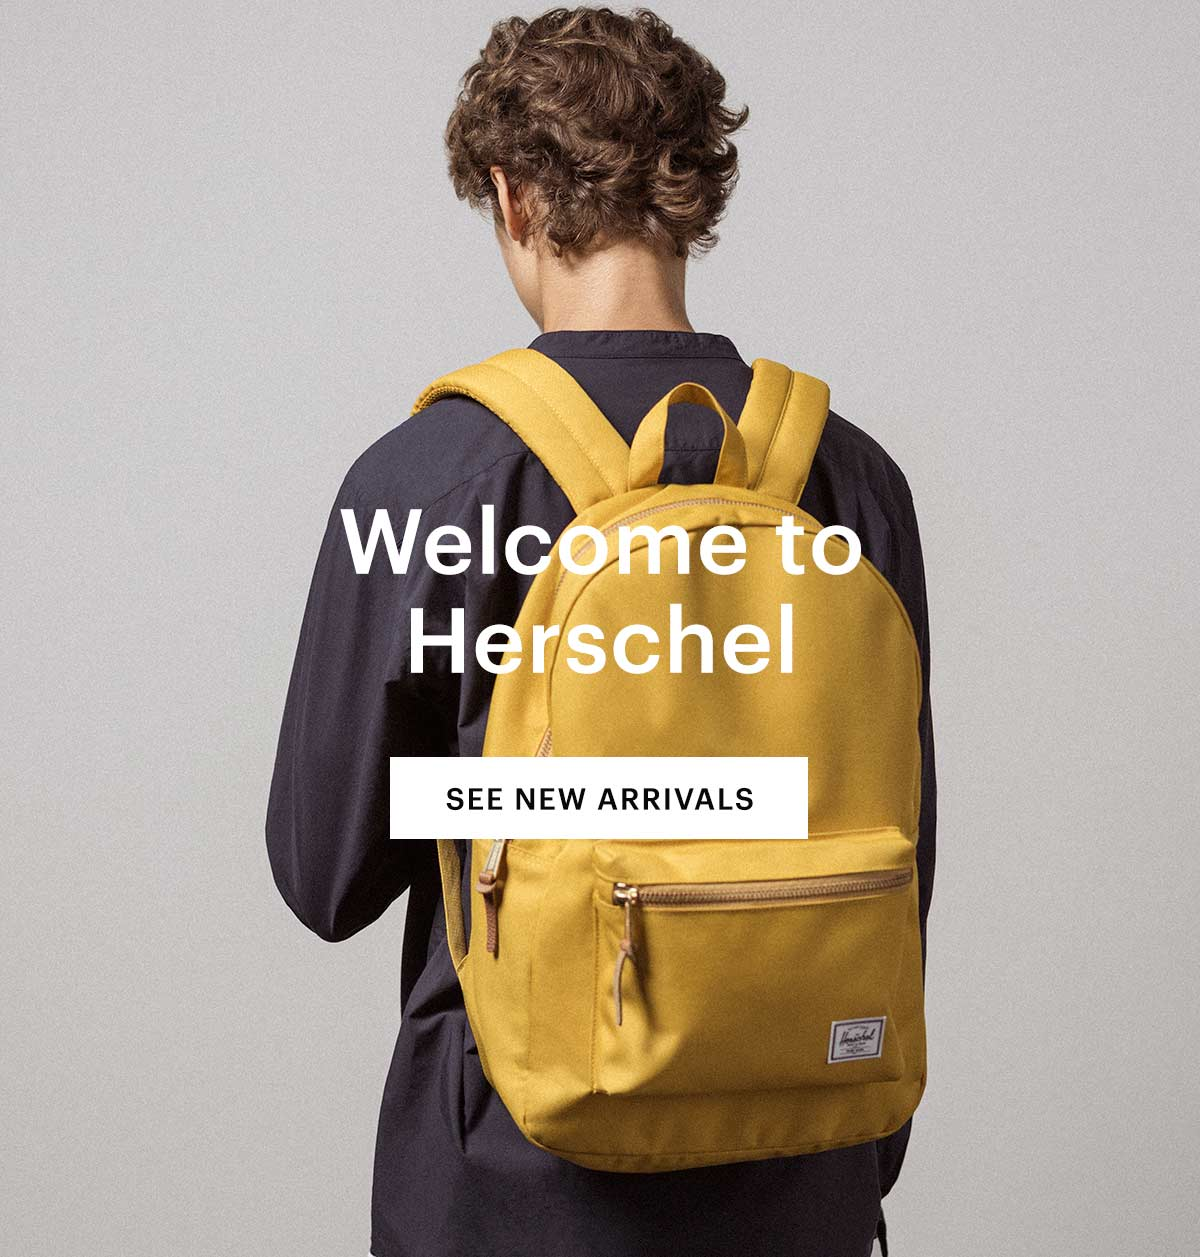 Welcome to Herschel. Enjoy your stay.